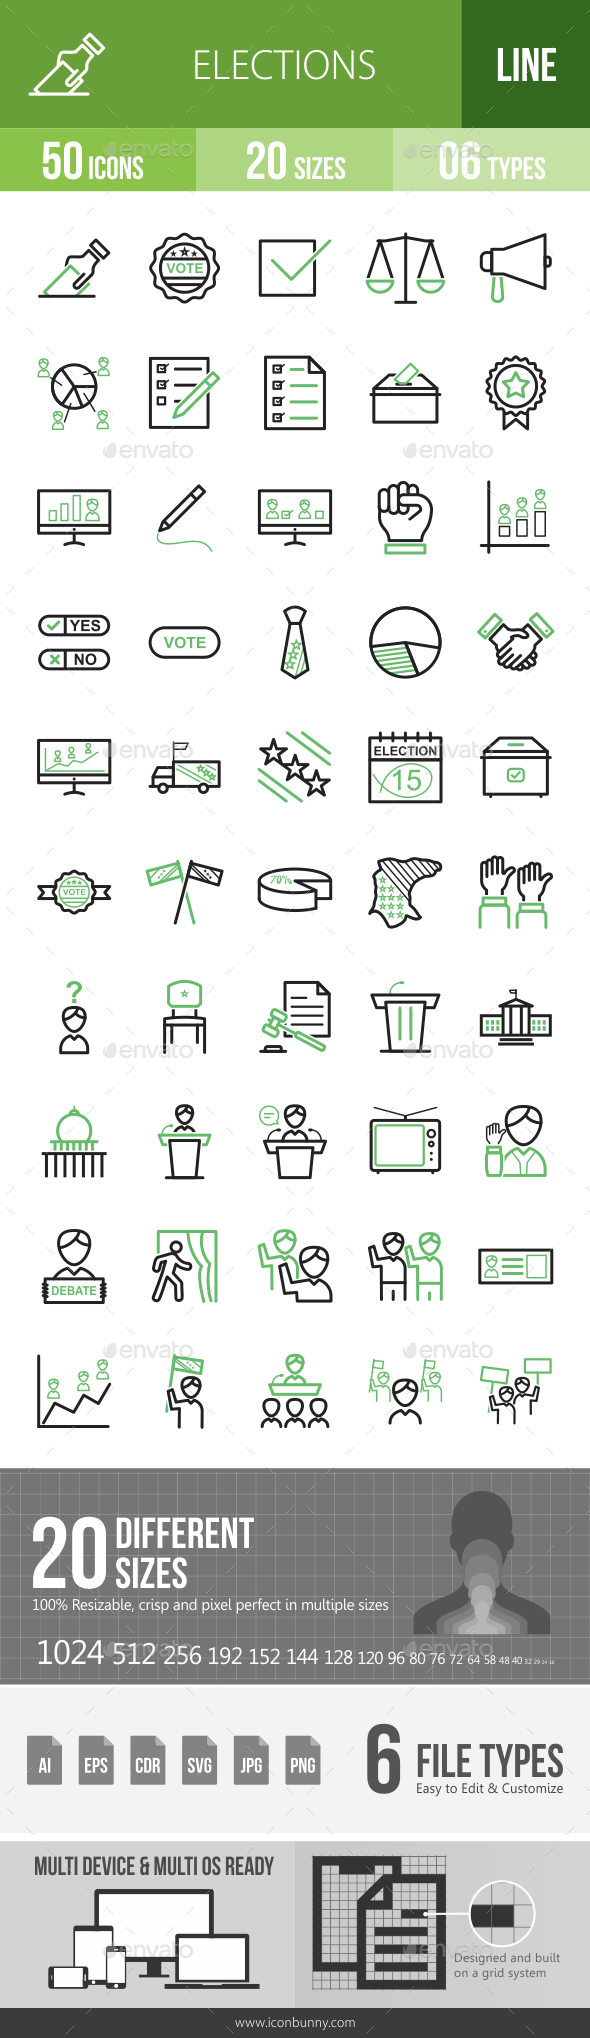 Elections Line Green & Black Icons - Icons